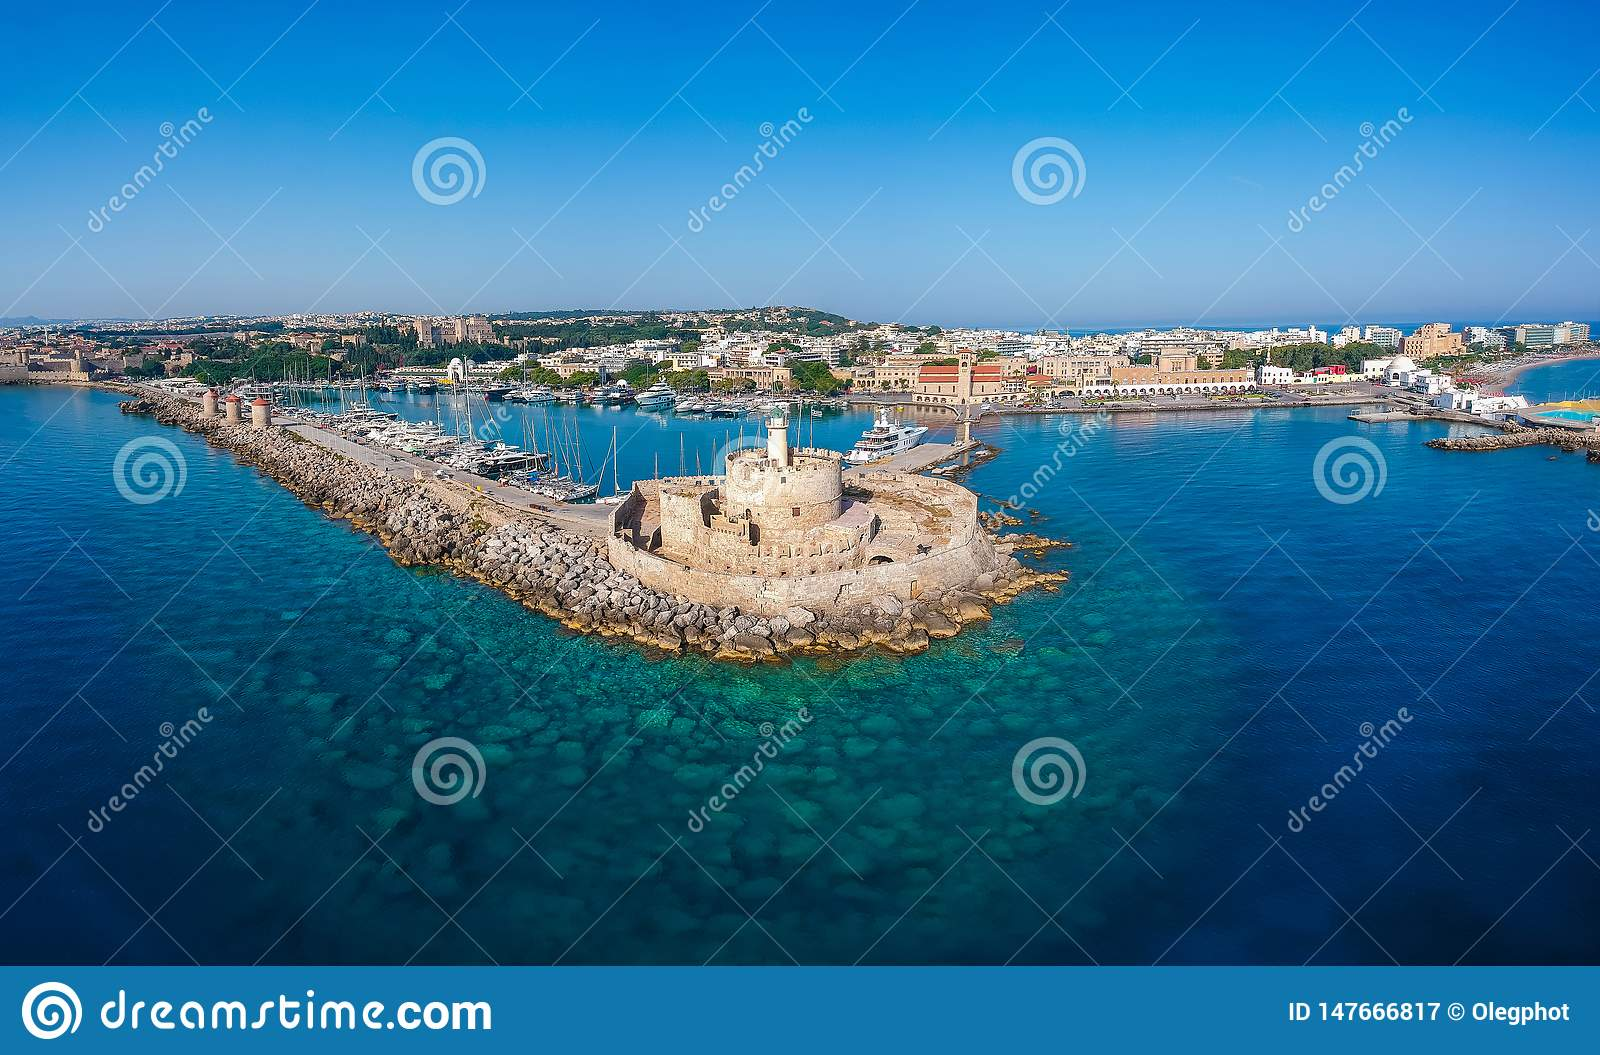 Aerial birds eye view drone photo of Rhodes city island, Dodecanese, Greece. Panorama with Mandraki port, lagoon and clear blue